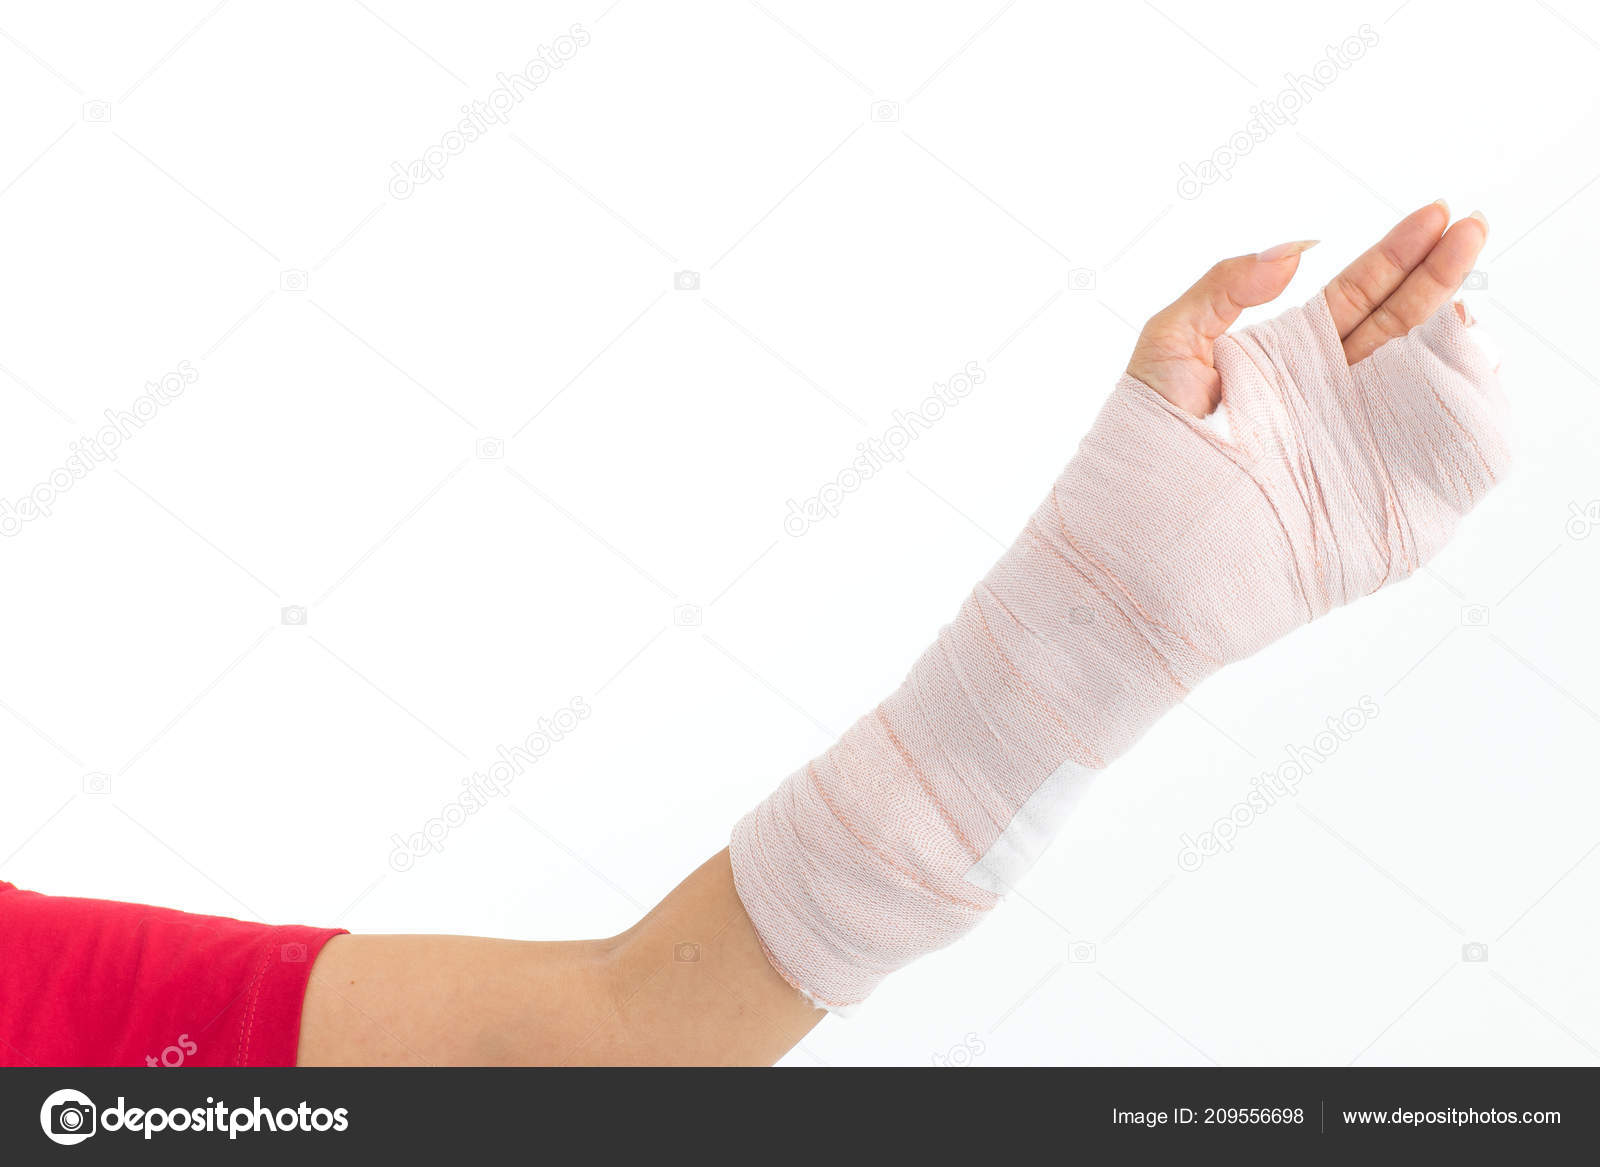 Broken Arm Left Hand Woman Plaster Cast Studio Photographed